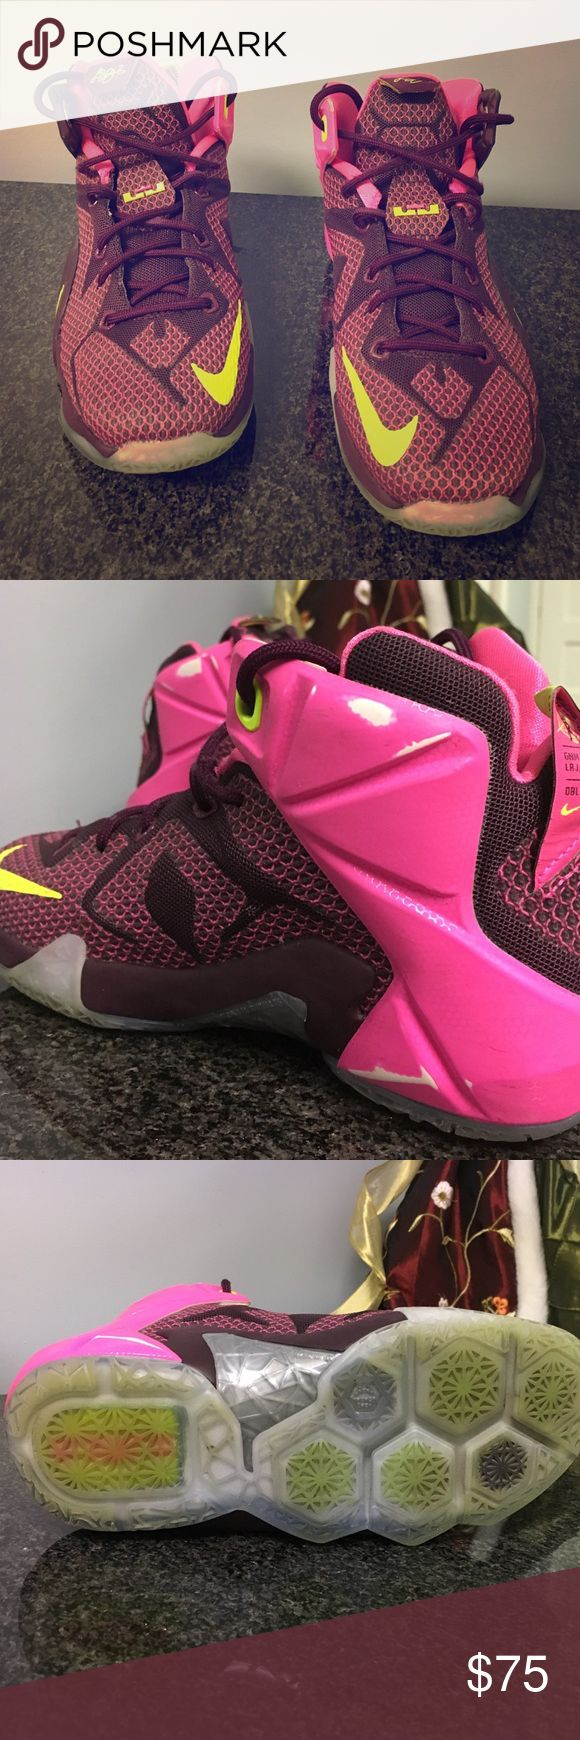 96a5685127e lebron james pink shoes lebrons soldiers 12